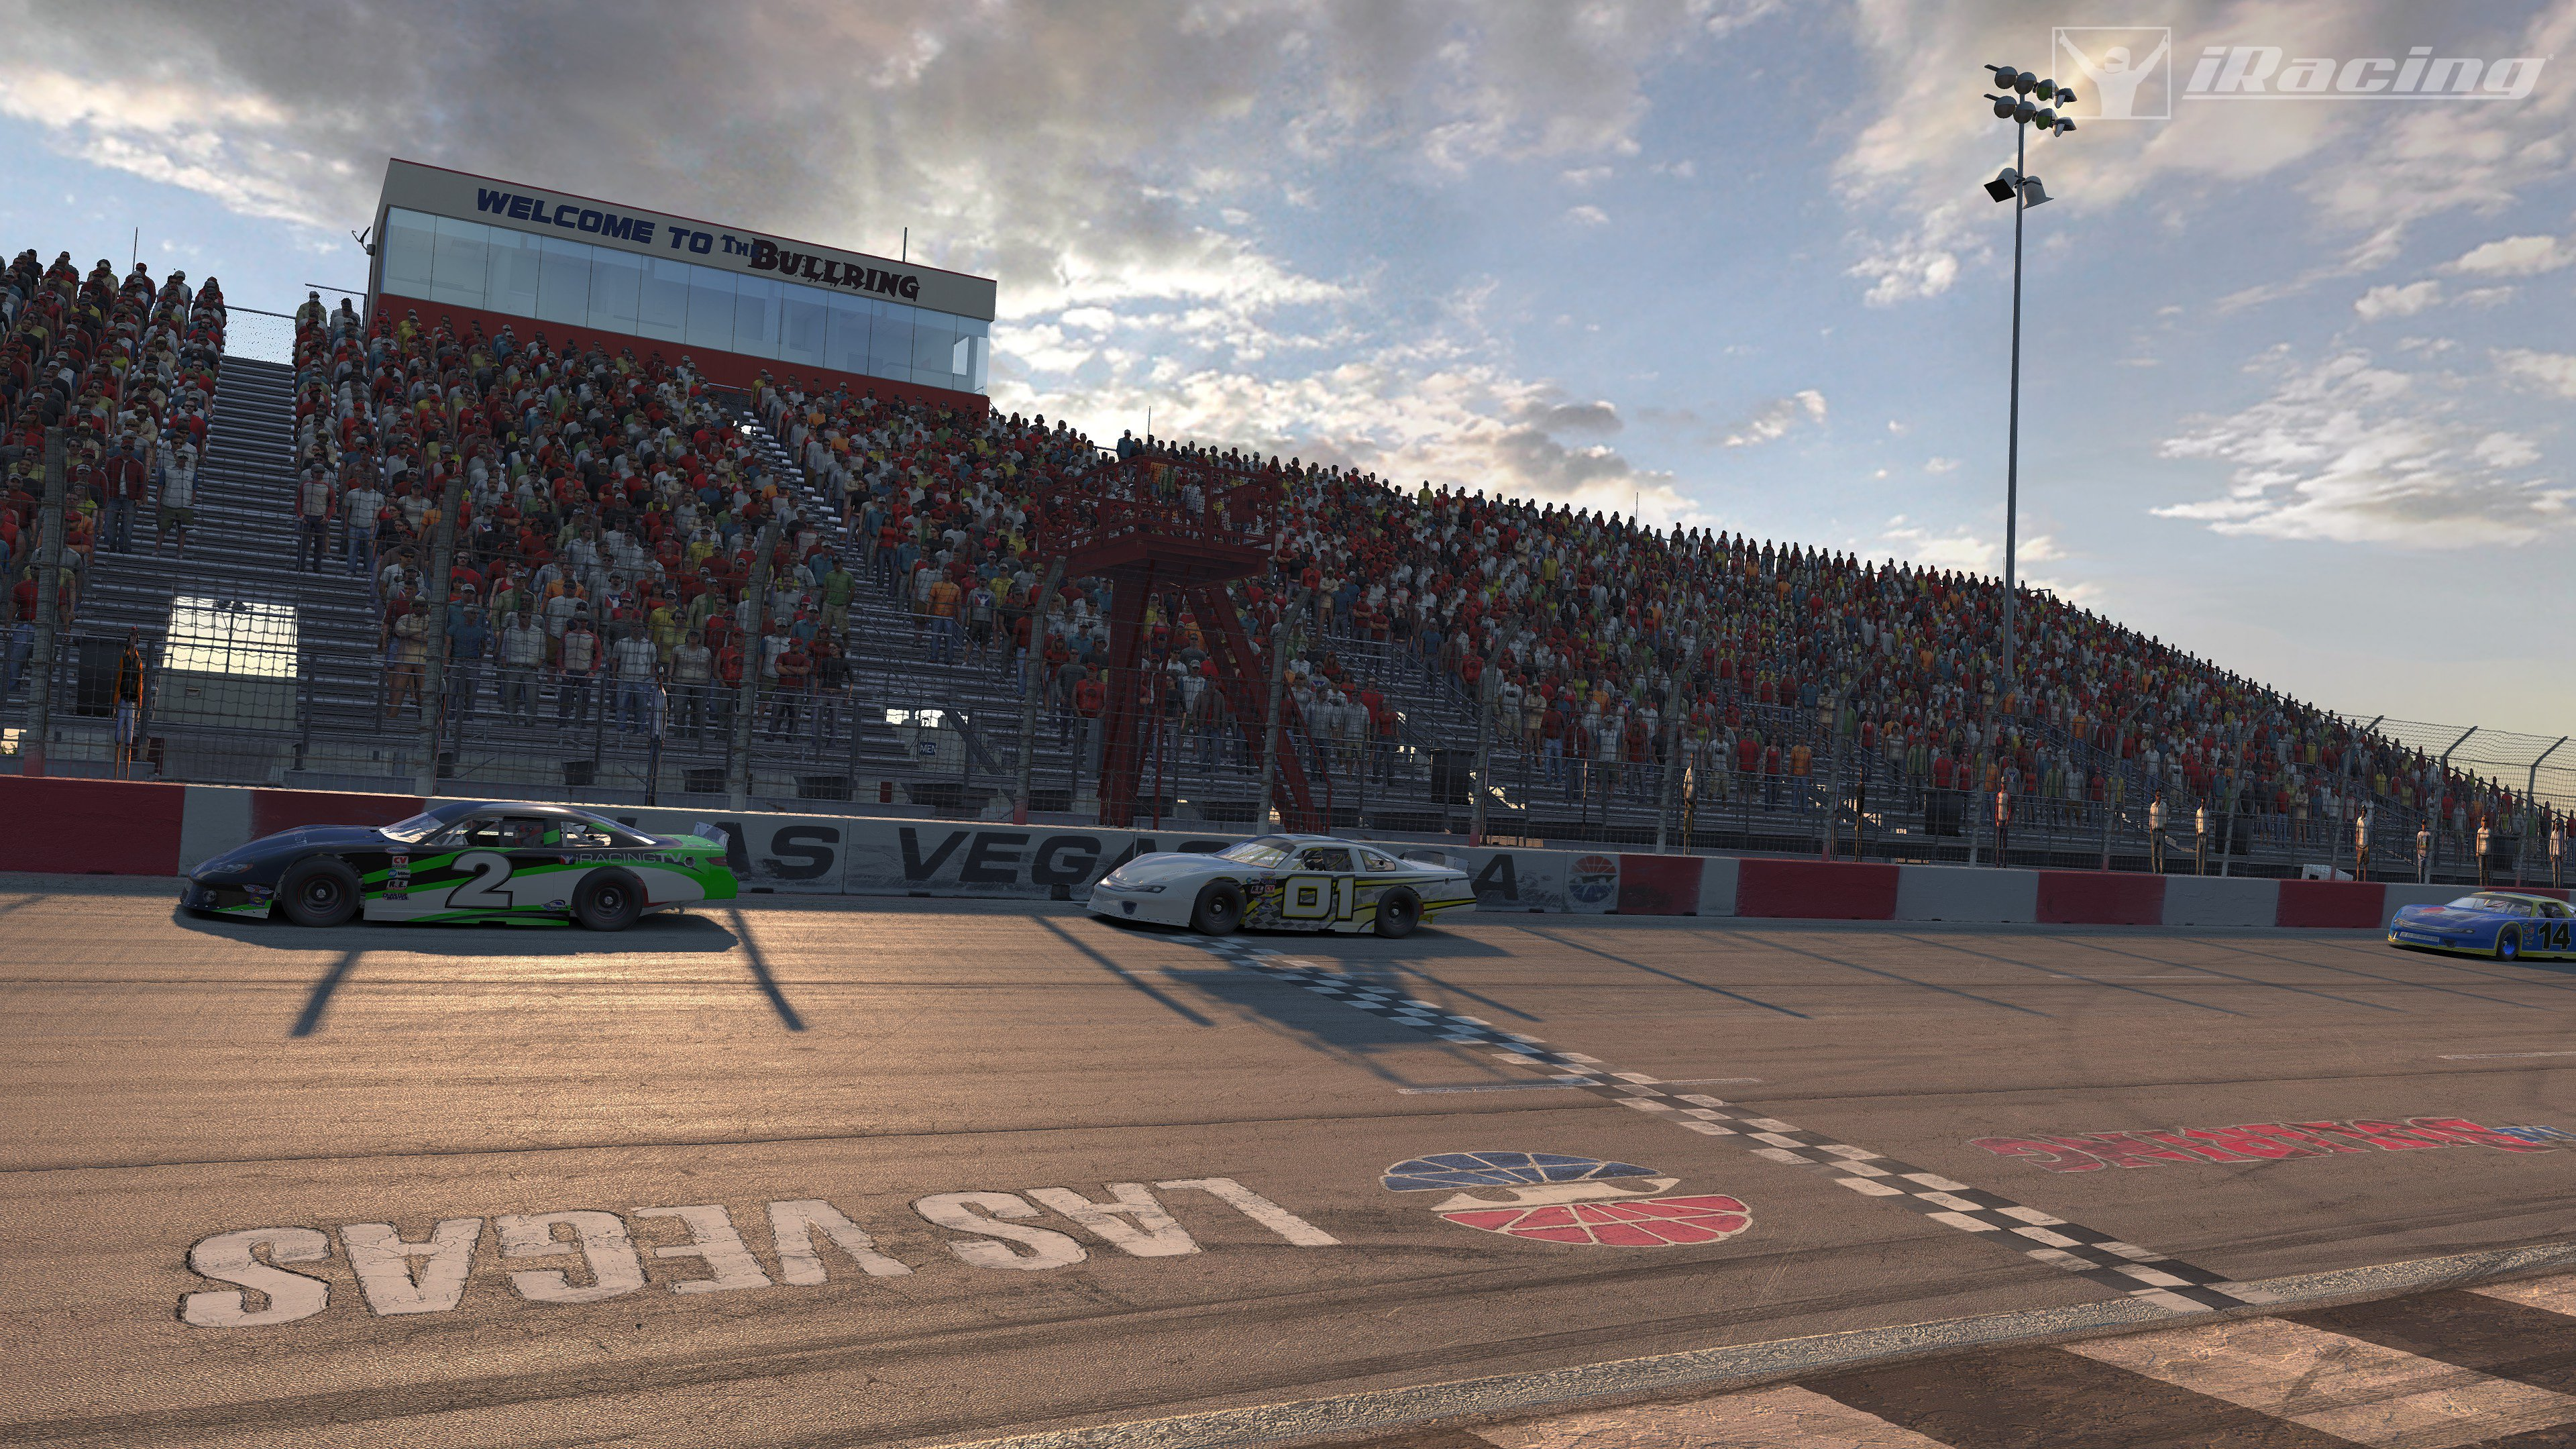 iRacing 2017 Season 2 Out Tomorrow, What's New? - Inside Sim Racing